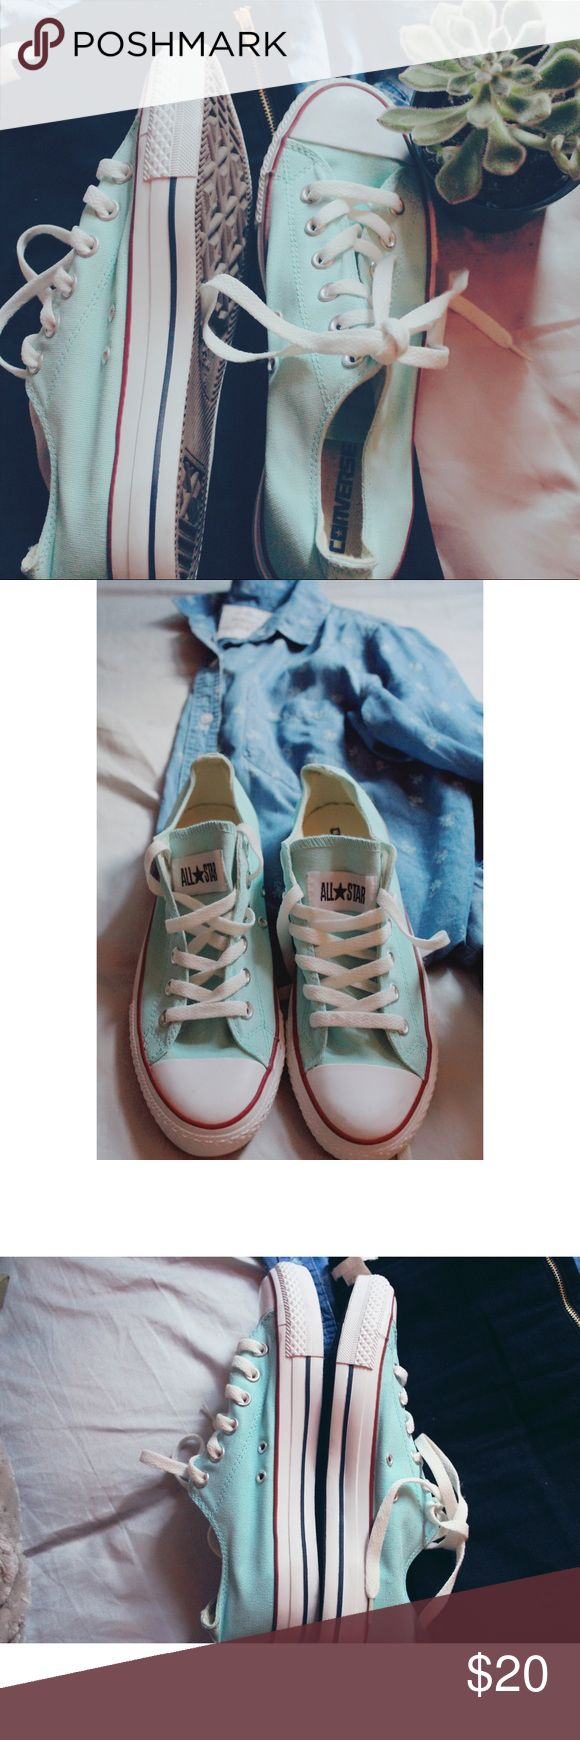 Size 9 in woman's /size 7 in men's teal converse Size 9 in woman's and size 7 in men, unisex baby blue, teal converse. Never wore once, perfect condition! I love these shoes but sadly they don't fit. 👟👟💙 Converse Shoes Sneakers